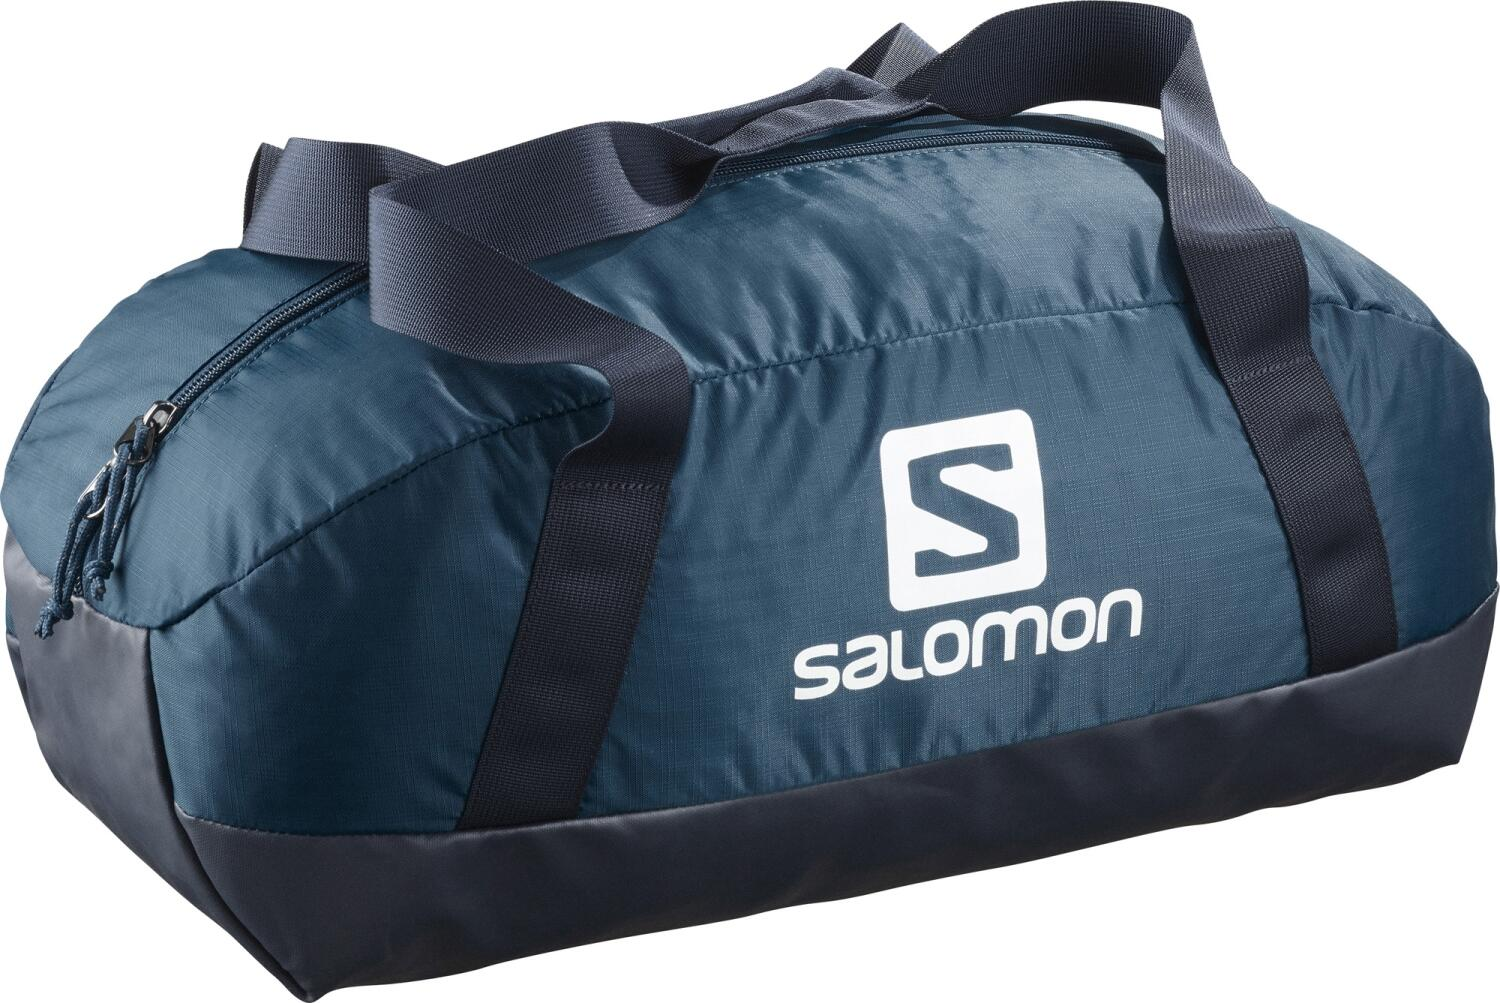 salomon-prolog-25-bag-sporttasche-farbe-poseidon-night-sky-